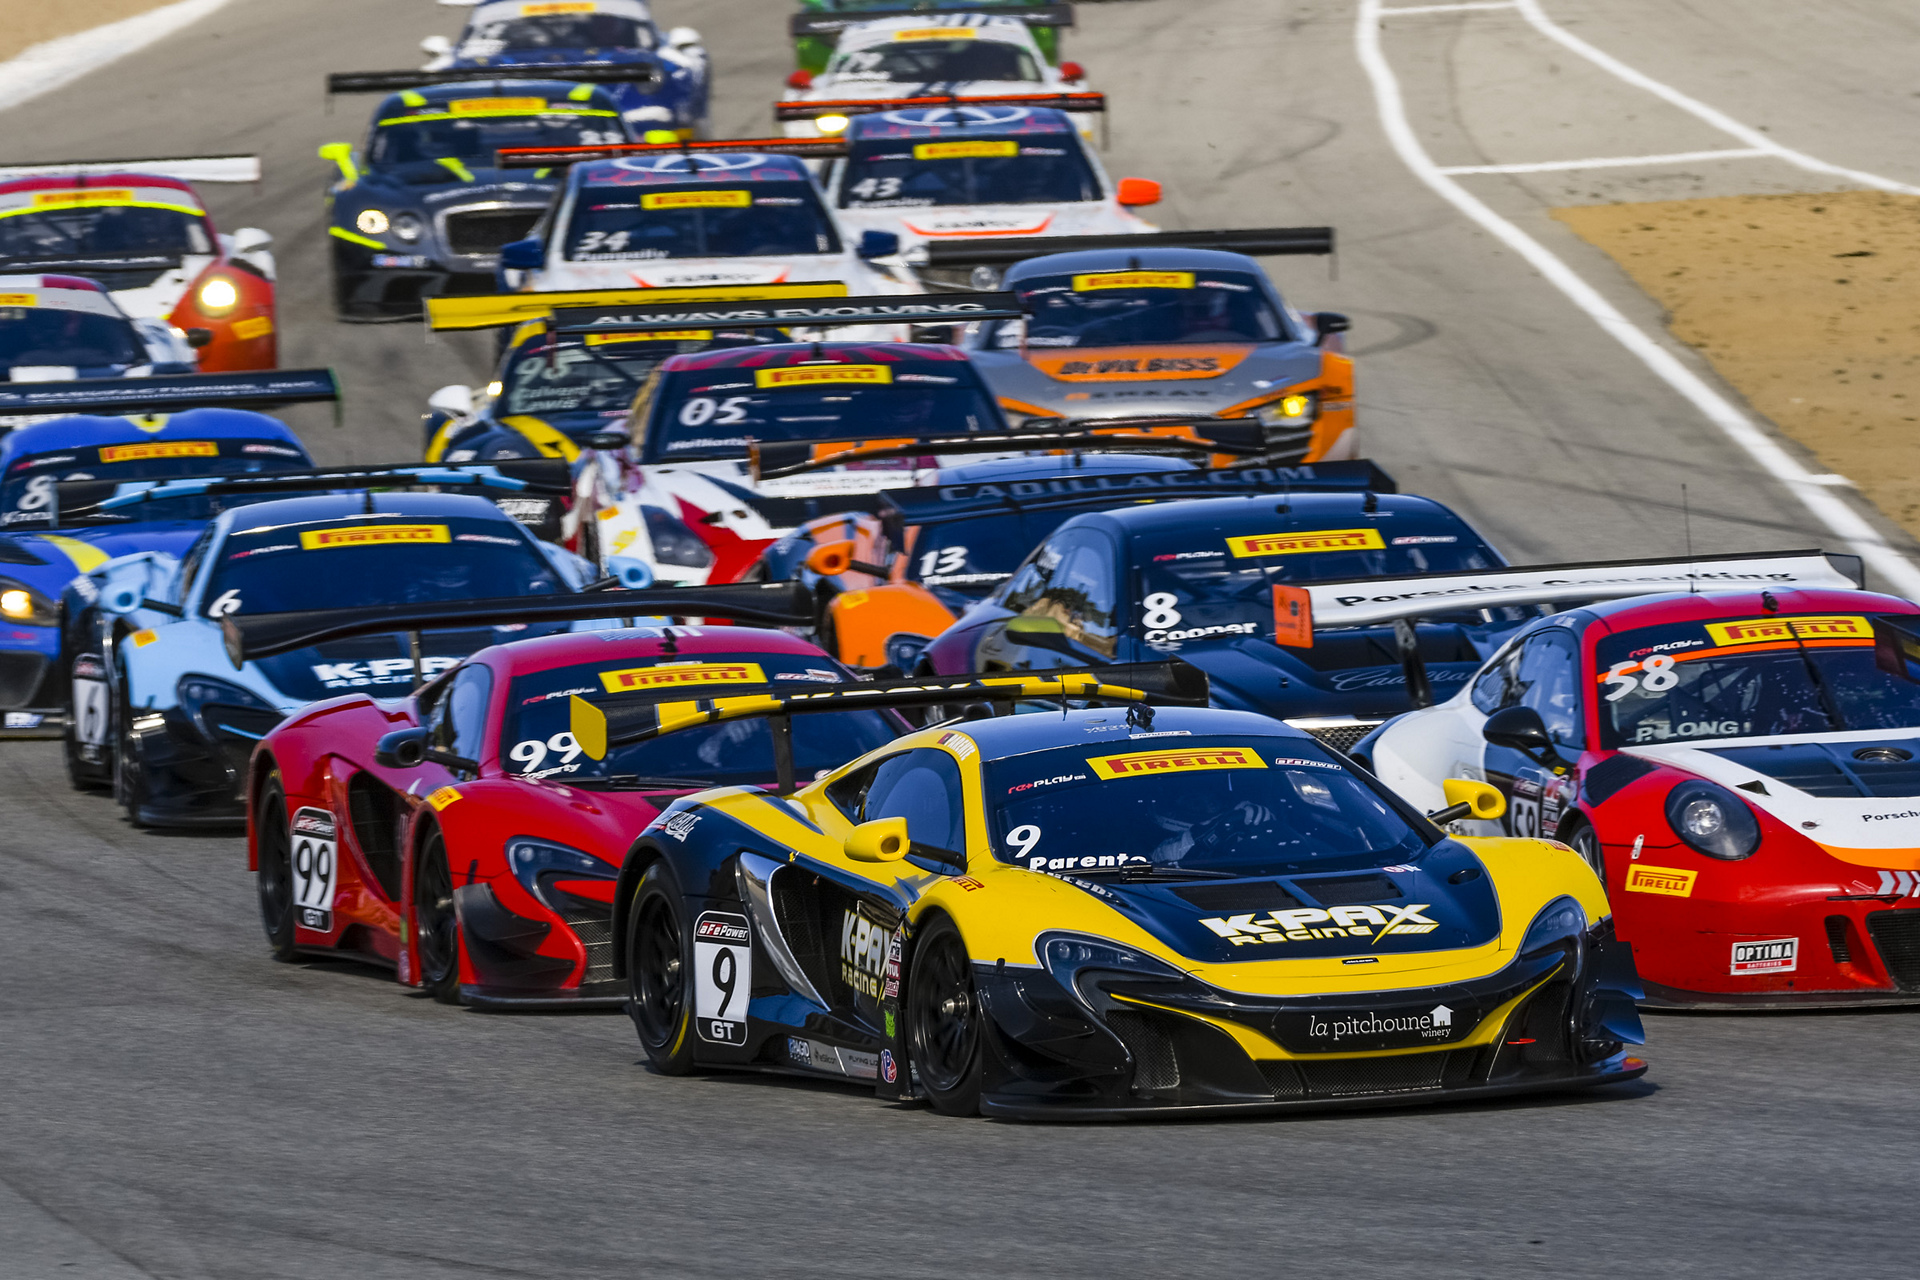 McLaren 650S GT3 secures triple honours during dramatic Pirelli world challenge title decider at Laguna Seca © McLaren Automotive